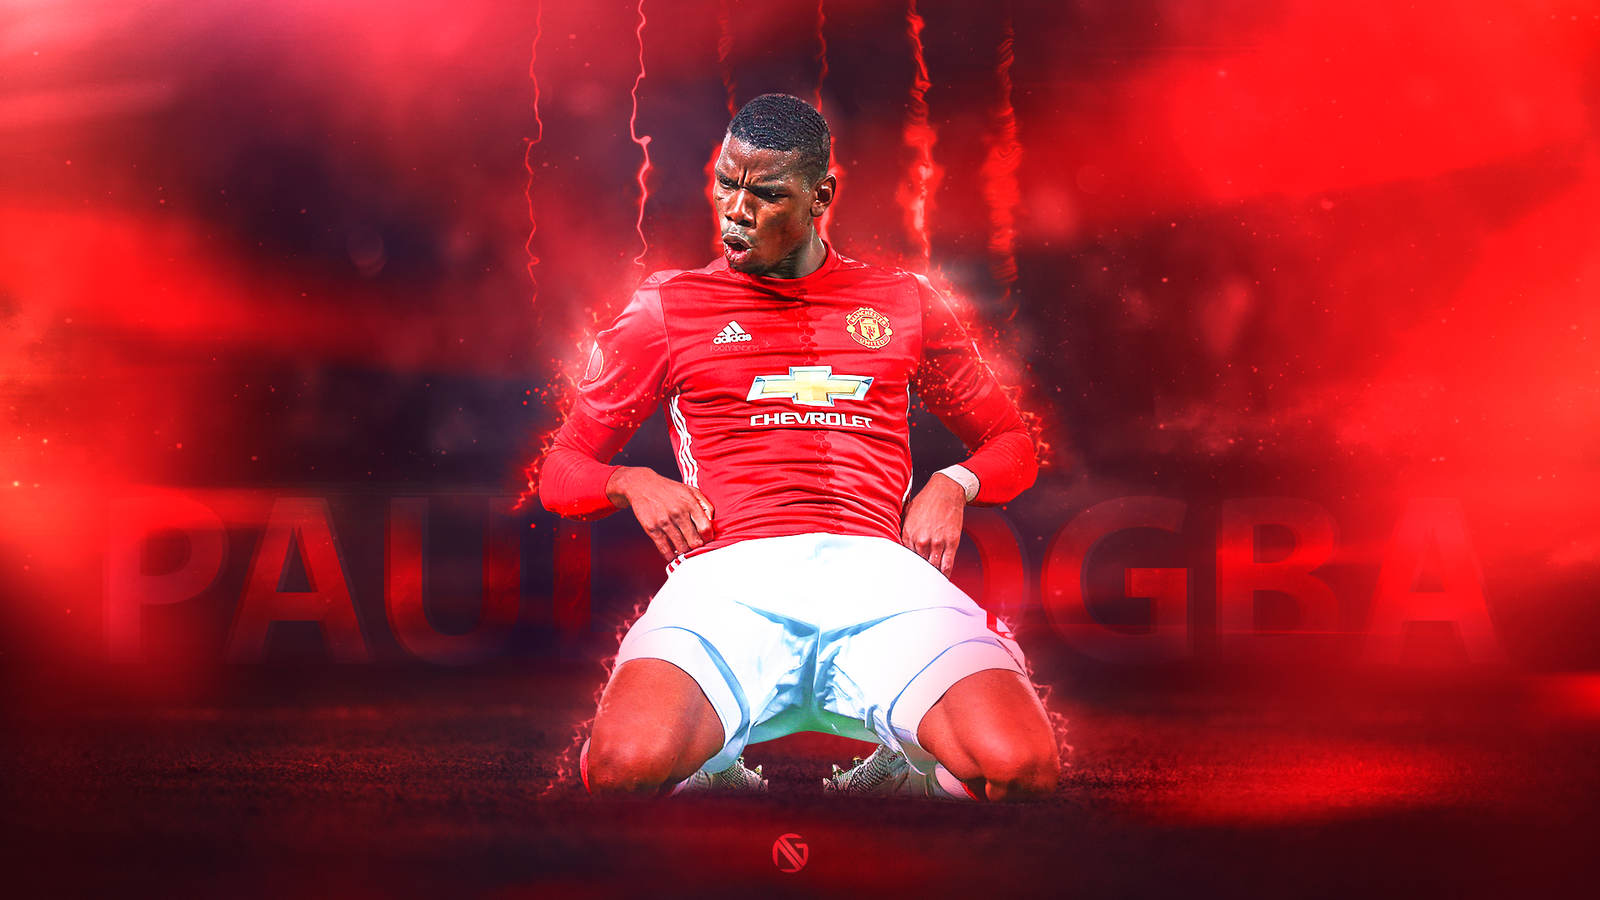 Paul Pogba Wallpaper 2017 (by Dreamgraphicss)